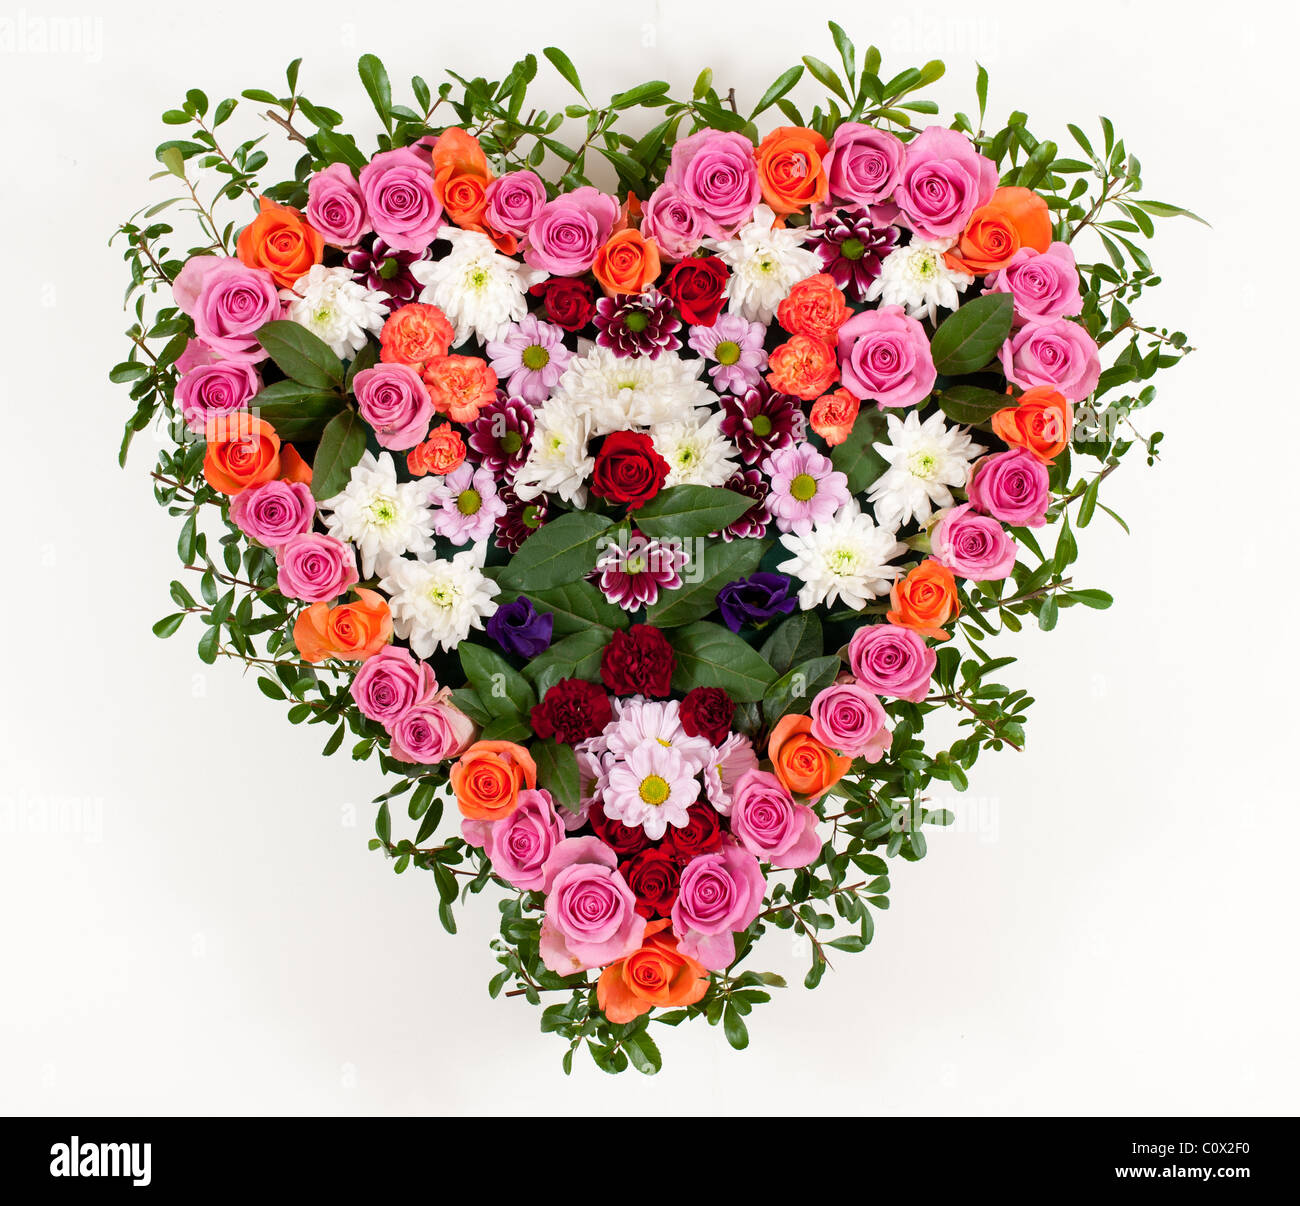 Flowers funerals stock photos flowers funerals stock images alamy heart shaped funeral flowers stock image izmirmasajfo